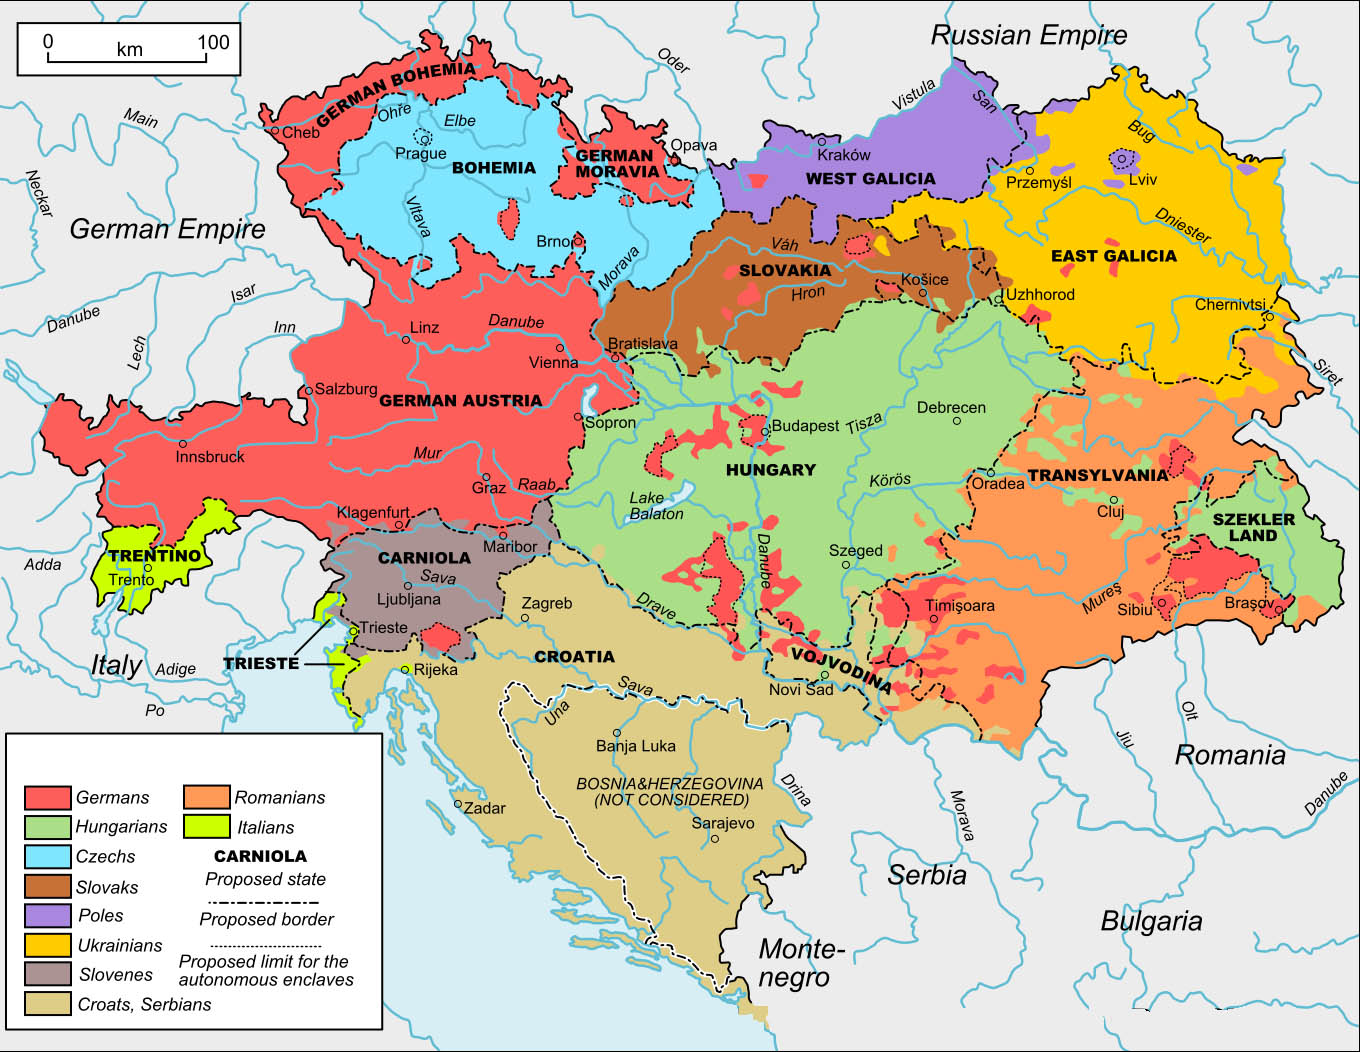 Labeled Map of Austrian Empire with States